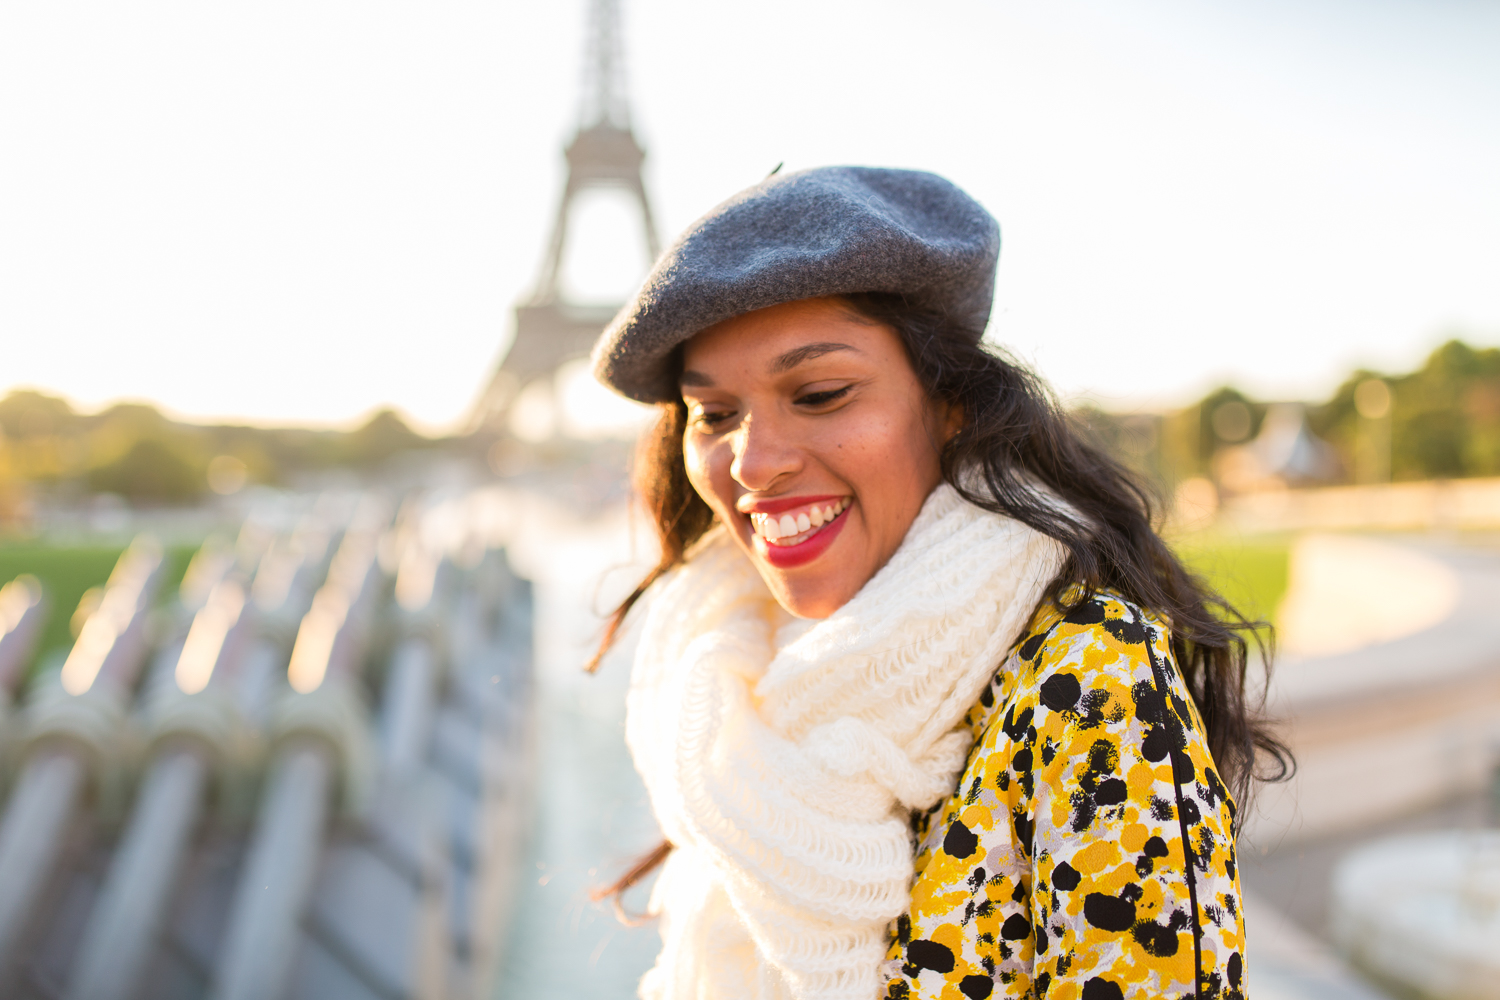 fall-outdoor-engagement-couples-photo-session-paris-photographer_003.jpg